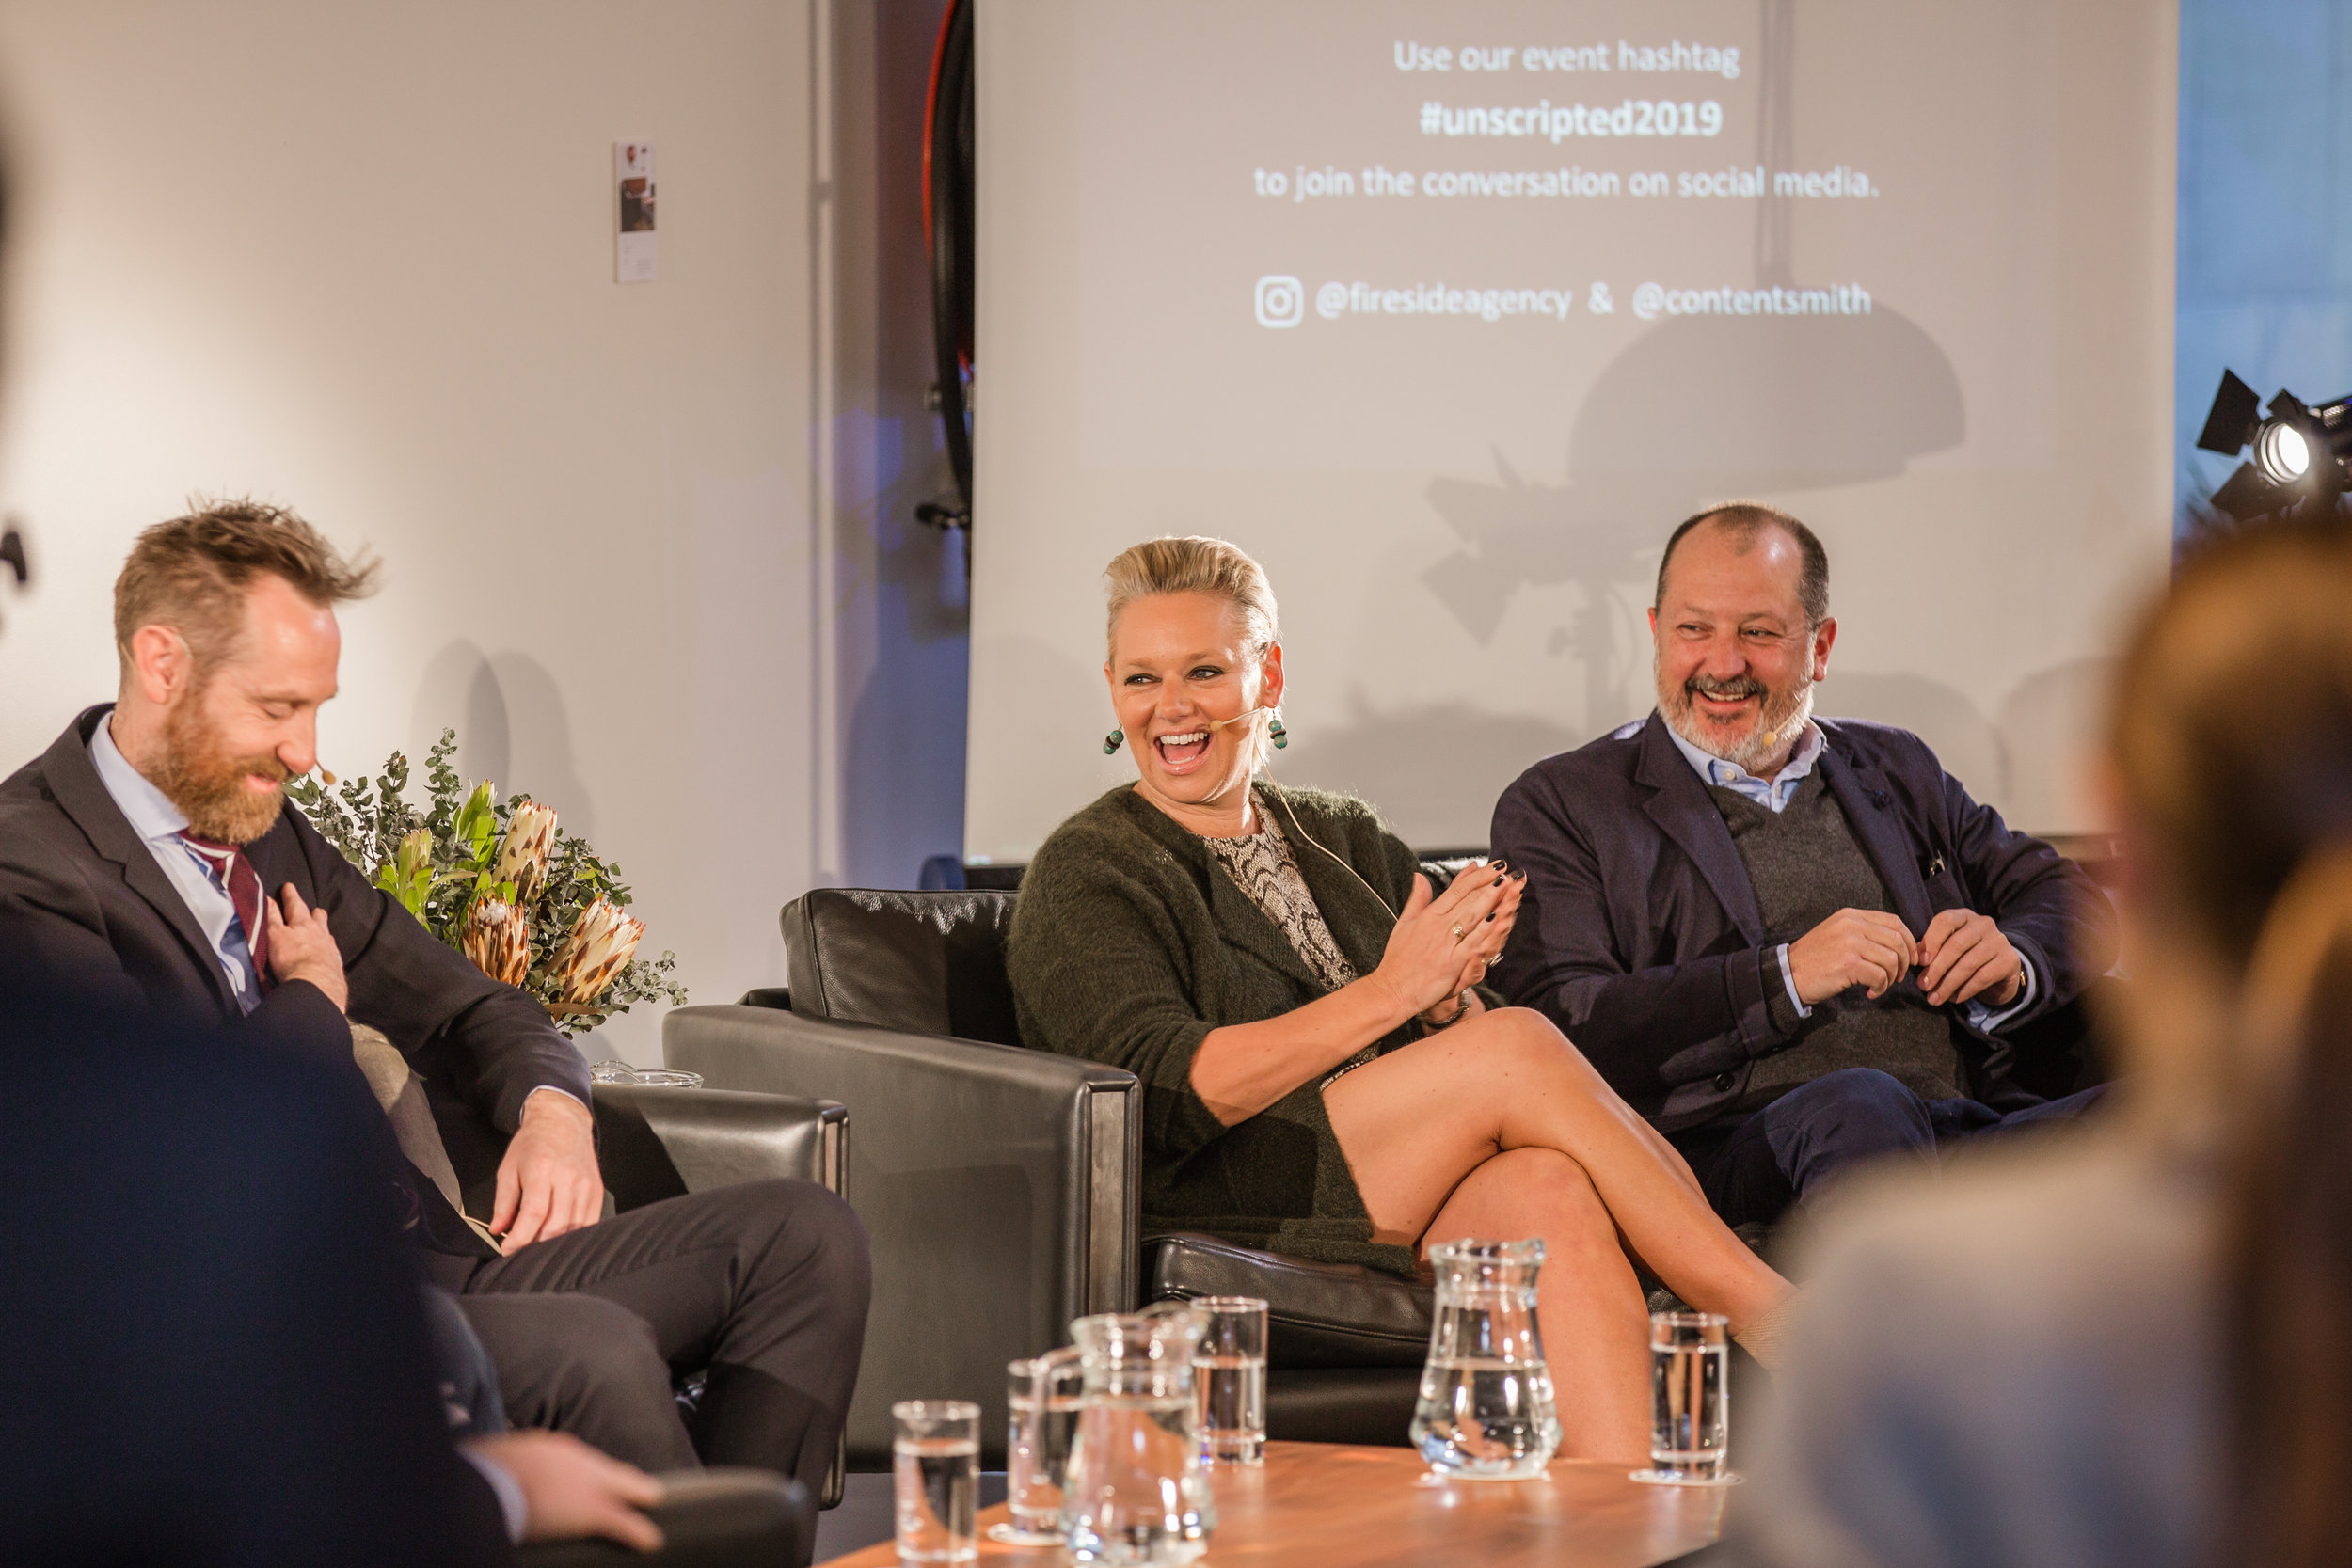 content-smith-unscripted-fireside-melbourne-capp-howcroft-HR48.jpg